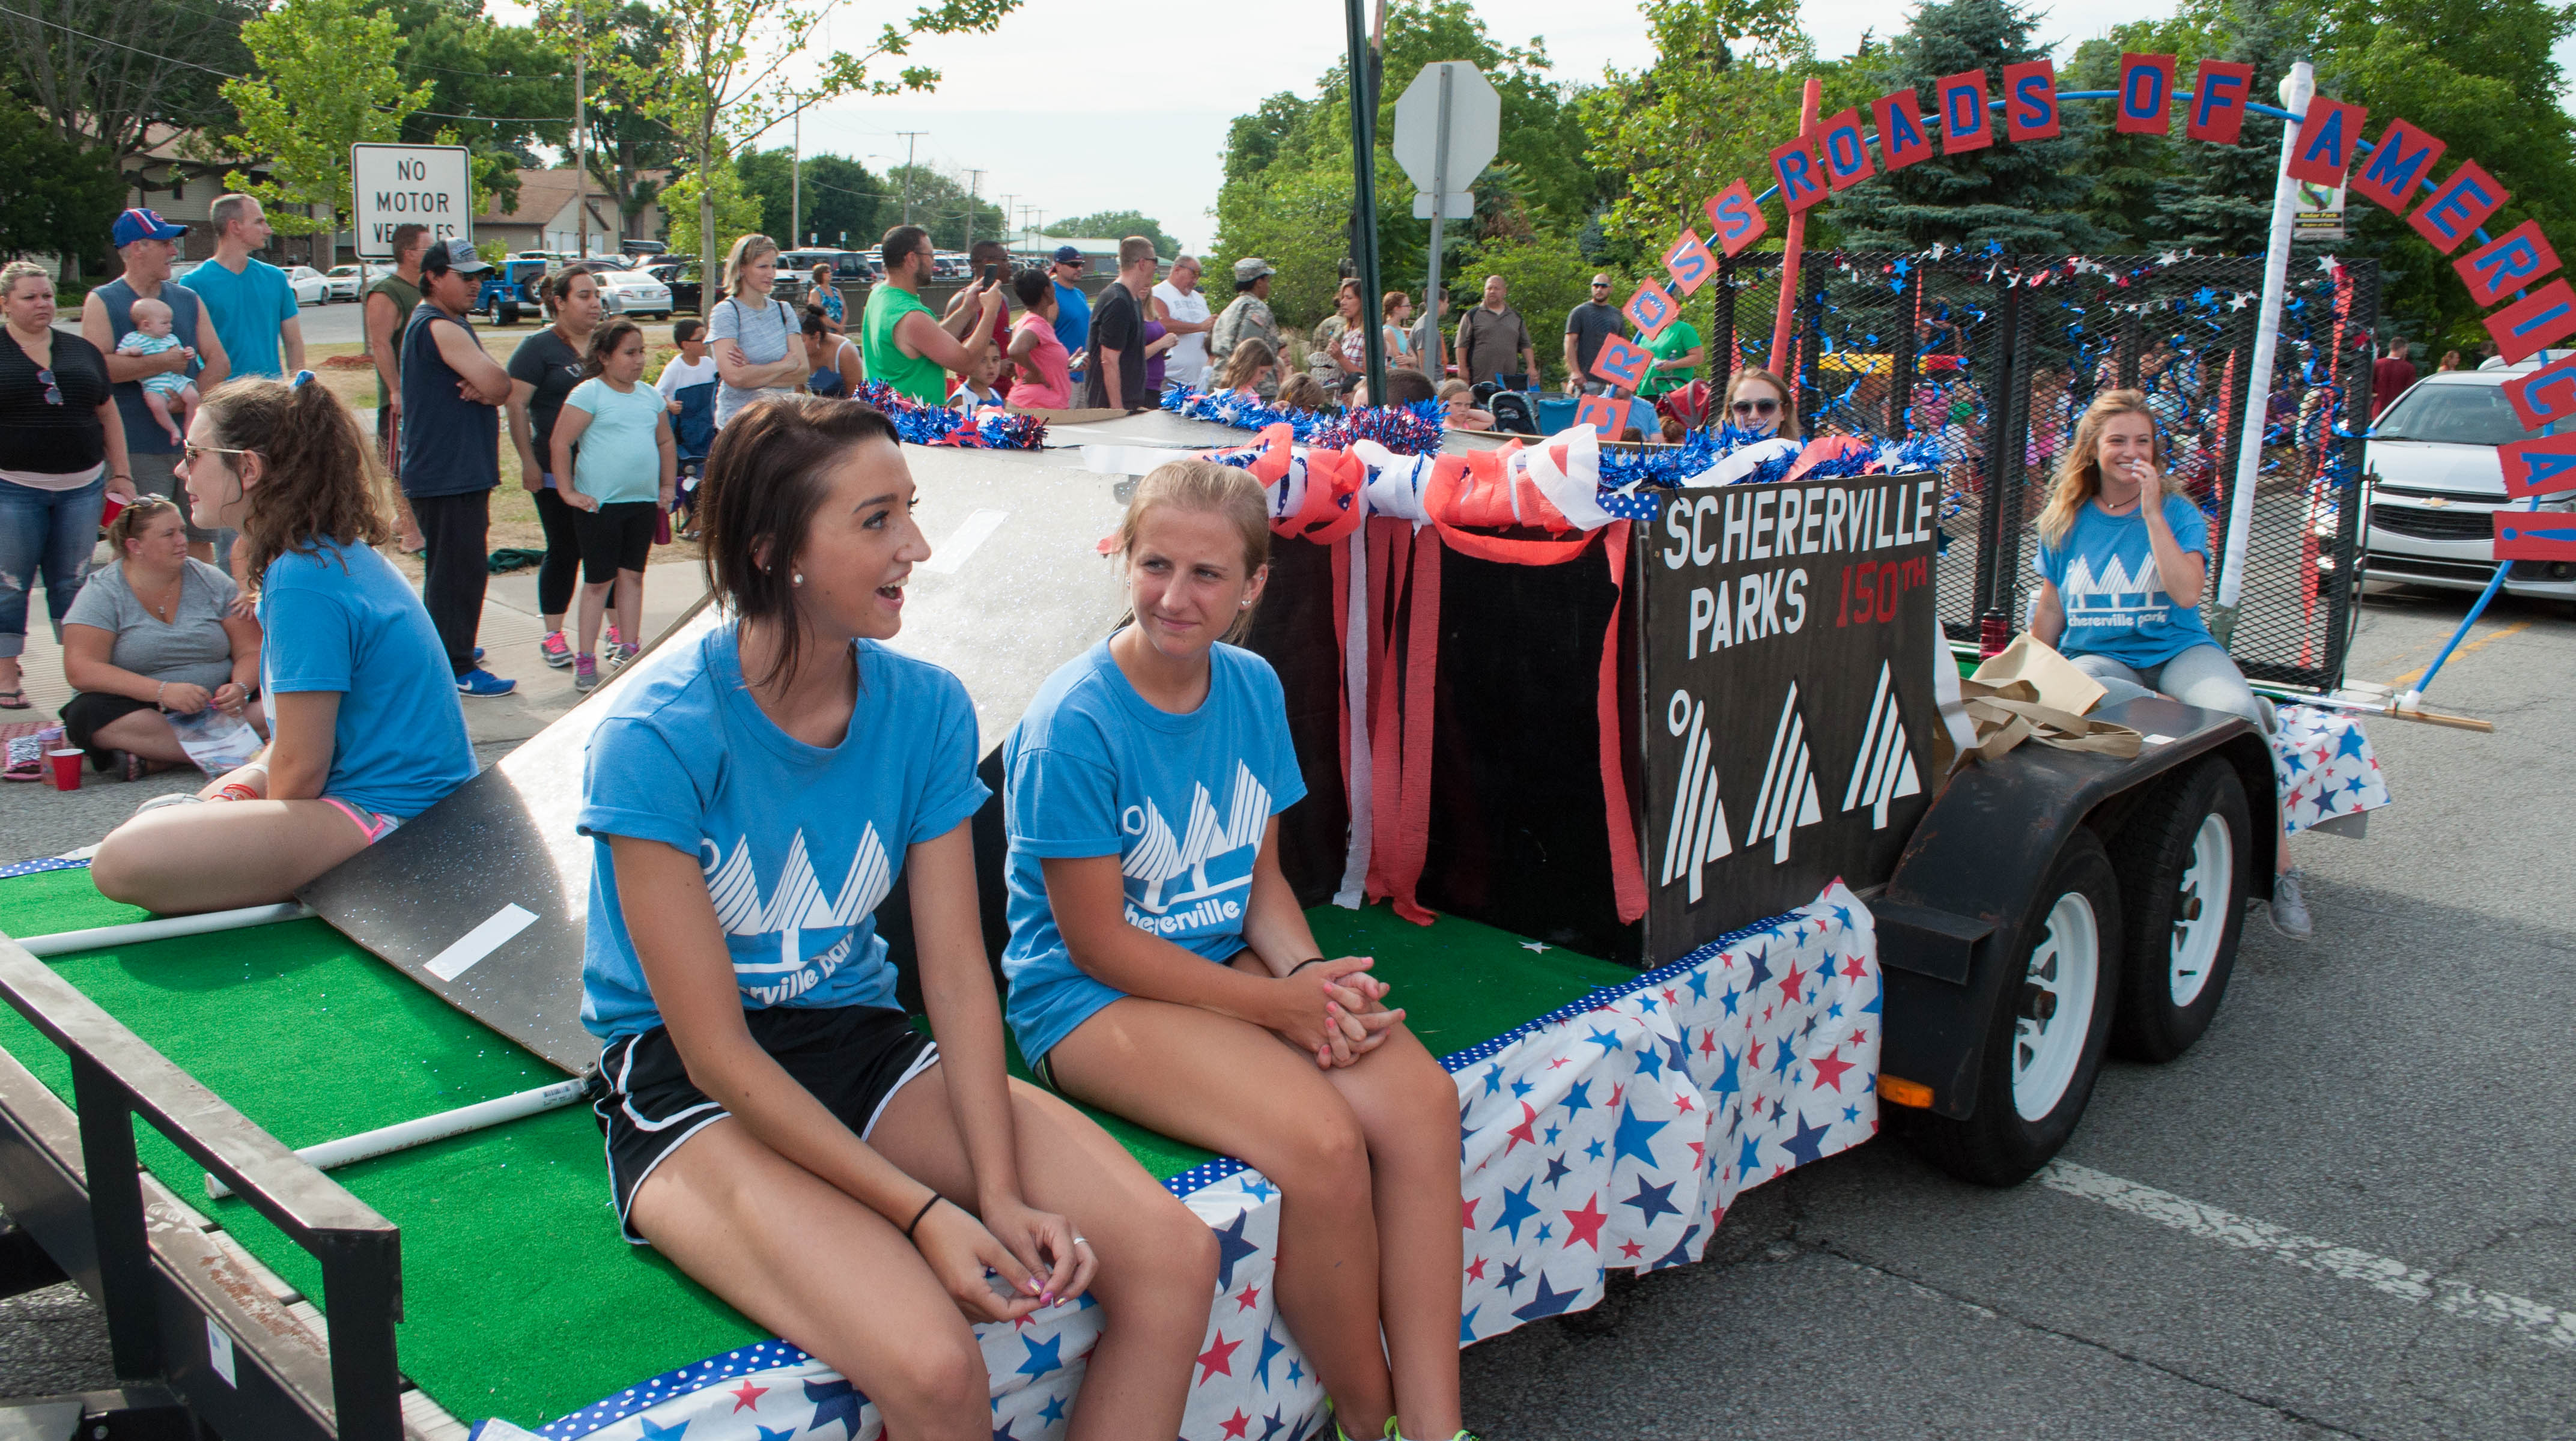 Schererville Parks Department members with their float during the Celebrate Schererville Parade